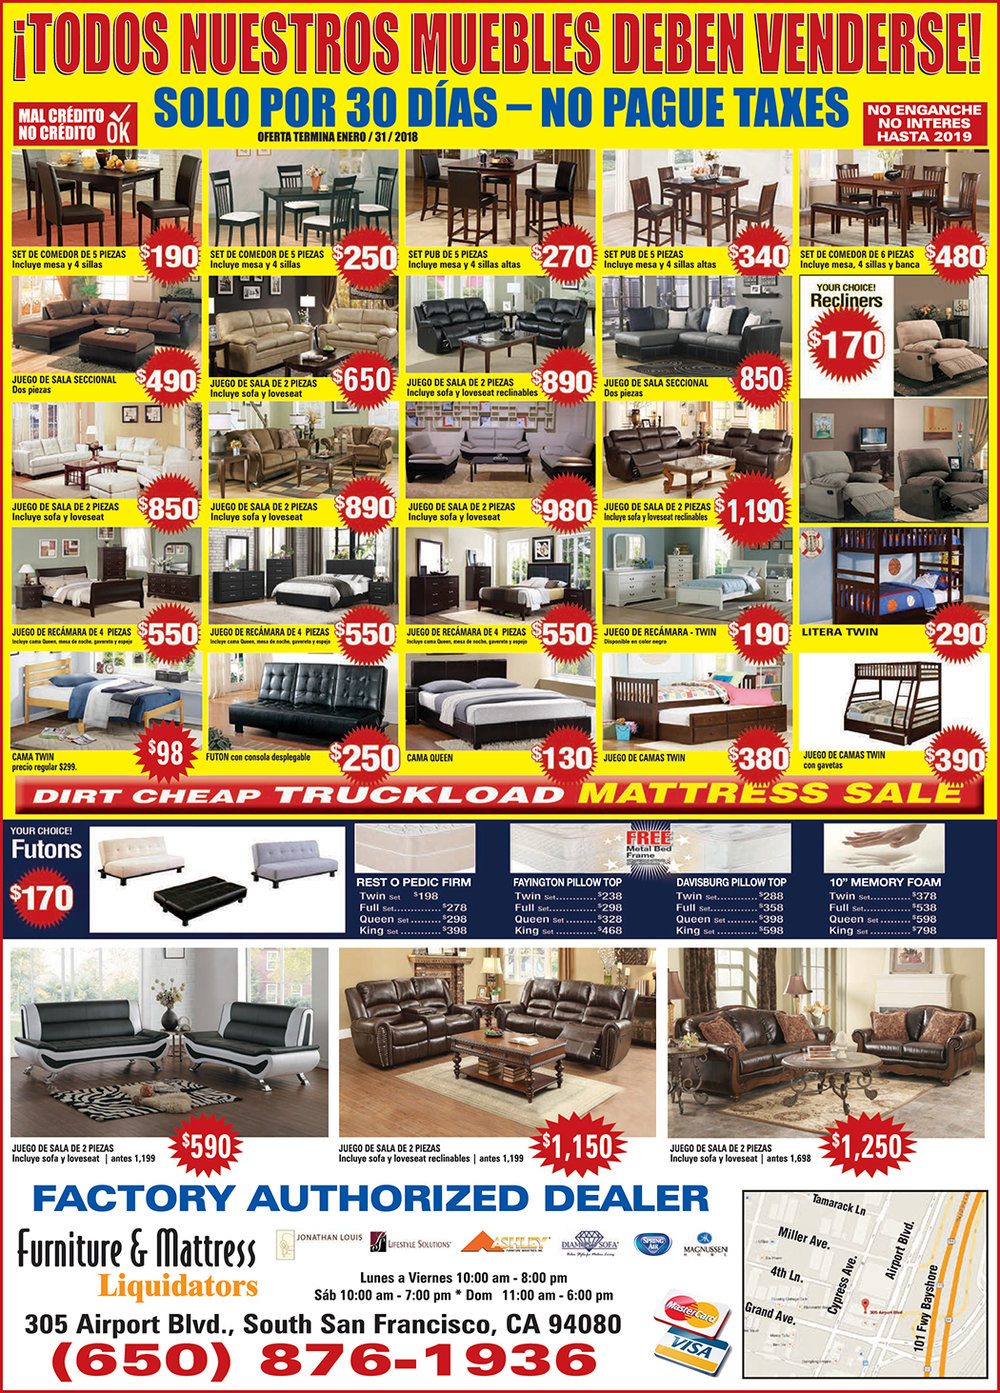 Furniture & Mattress Liquidators 1 Pag ENERO 2018.jpg